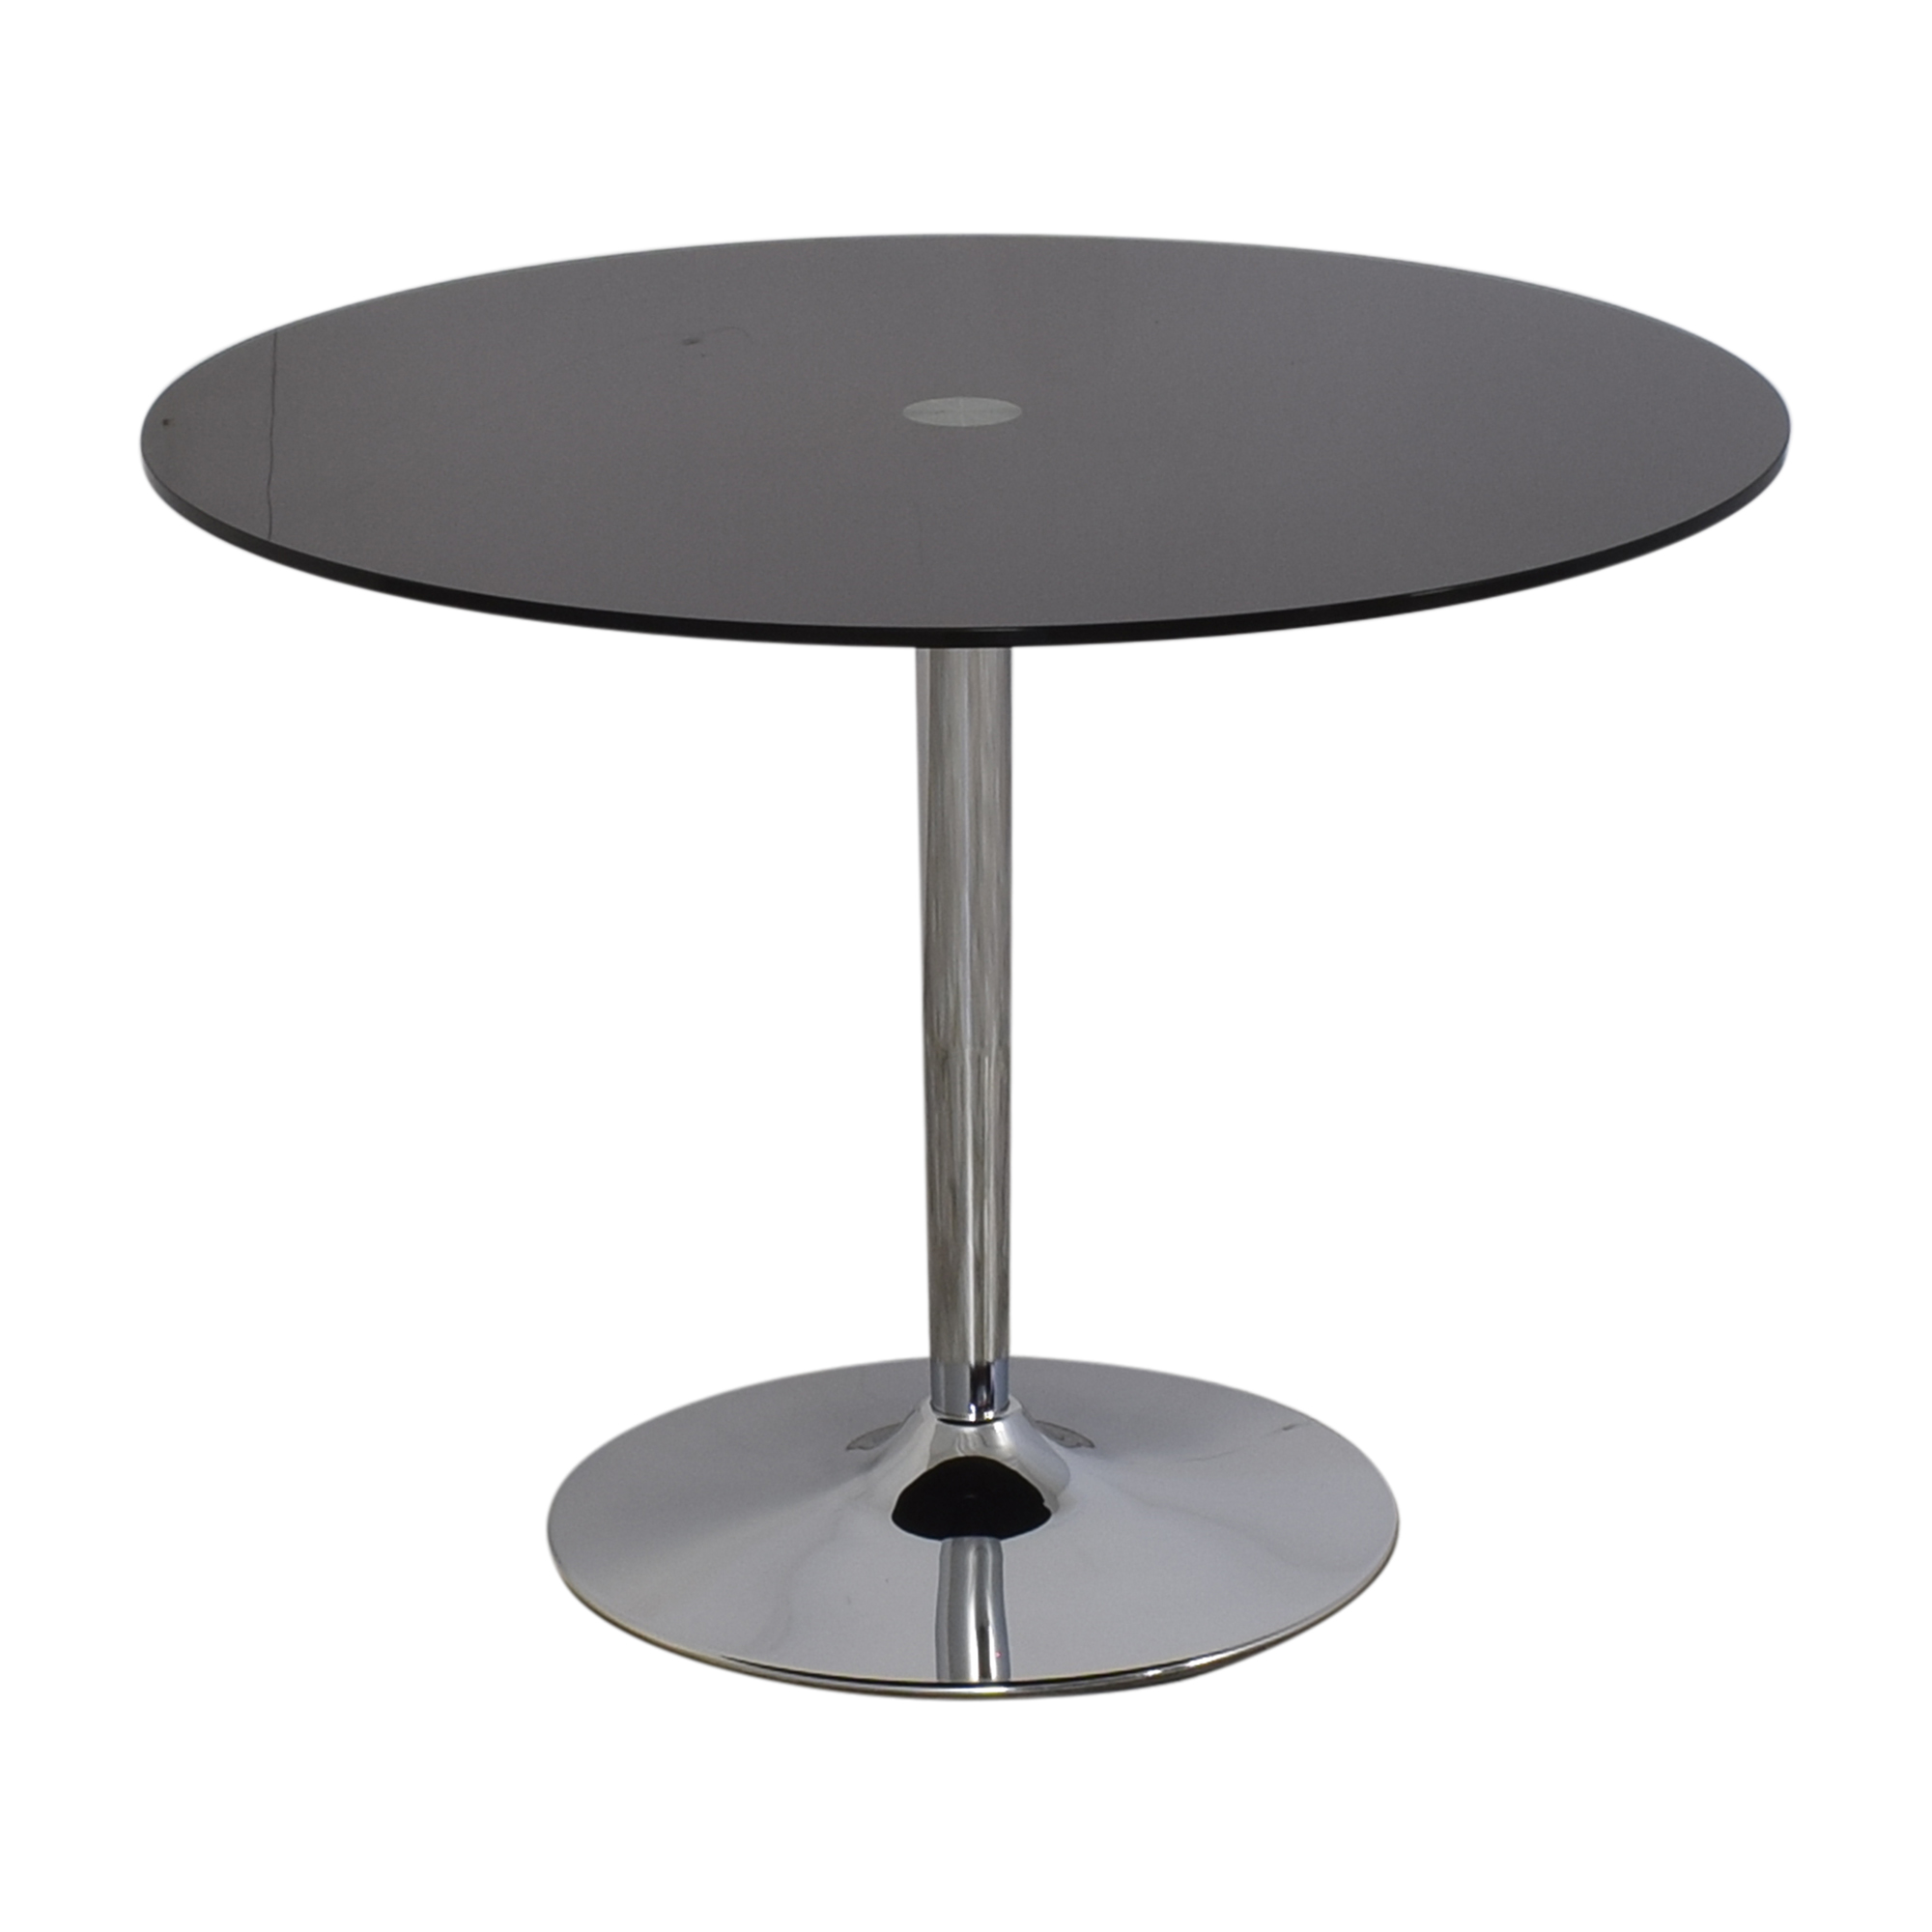 Jensen-Lewis Jensen Lewis Black Glass and Chrome Pedestal Dining Table discount